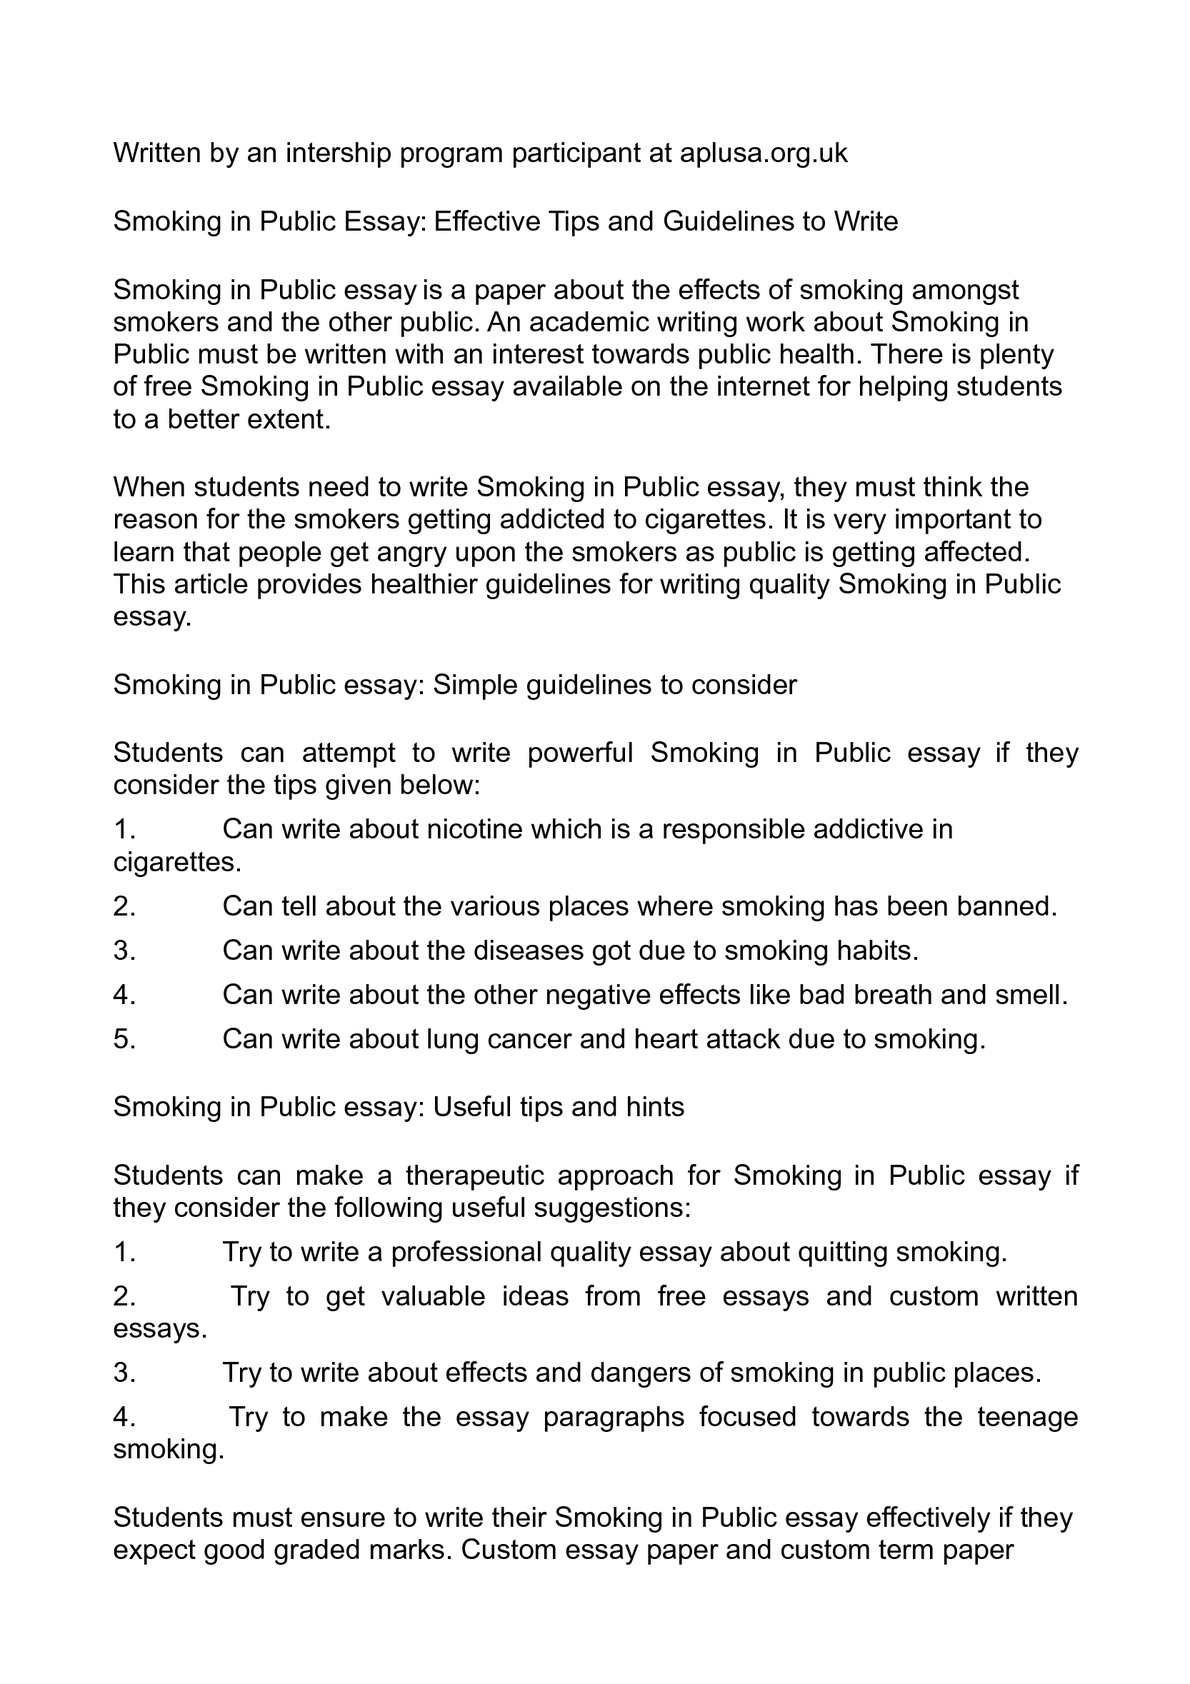 Mixed Mode Essay Smoking In Public